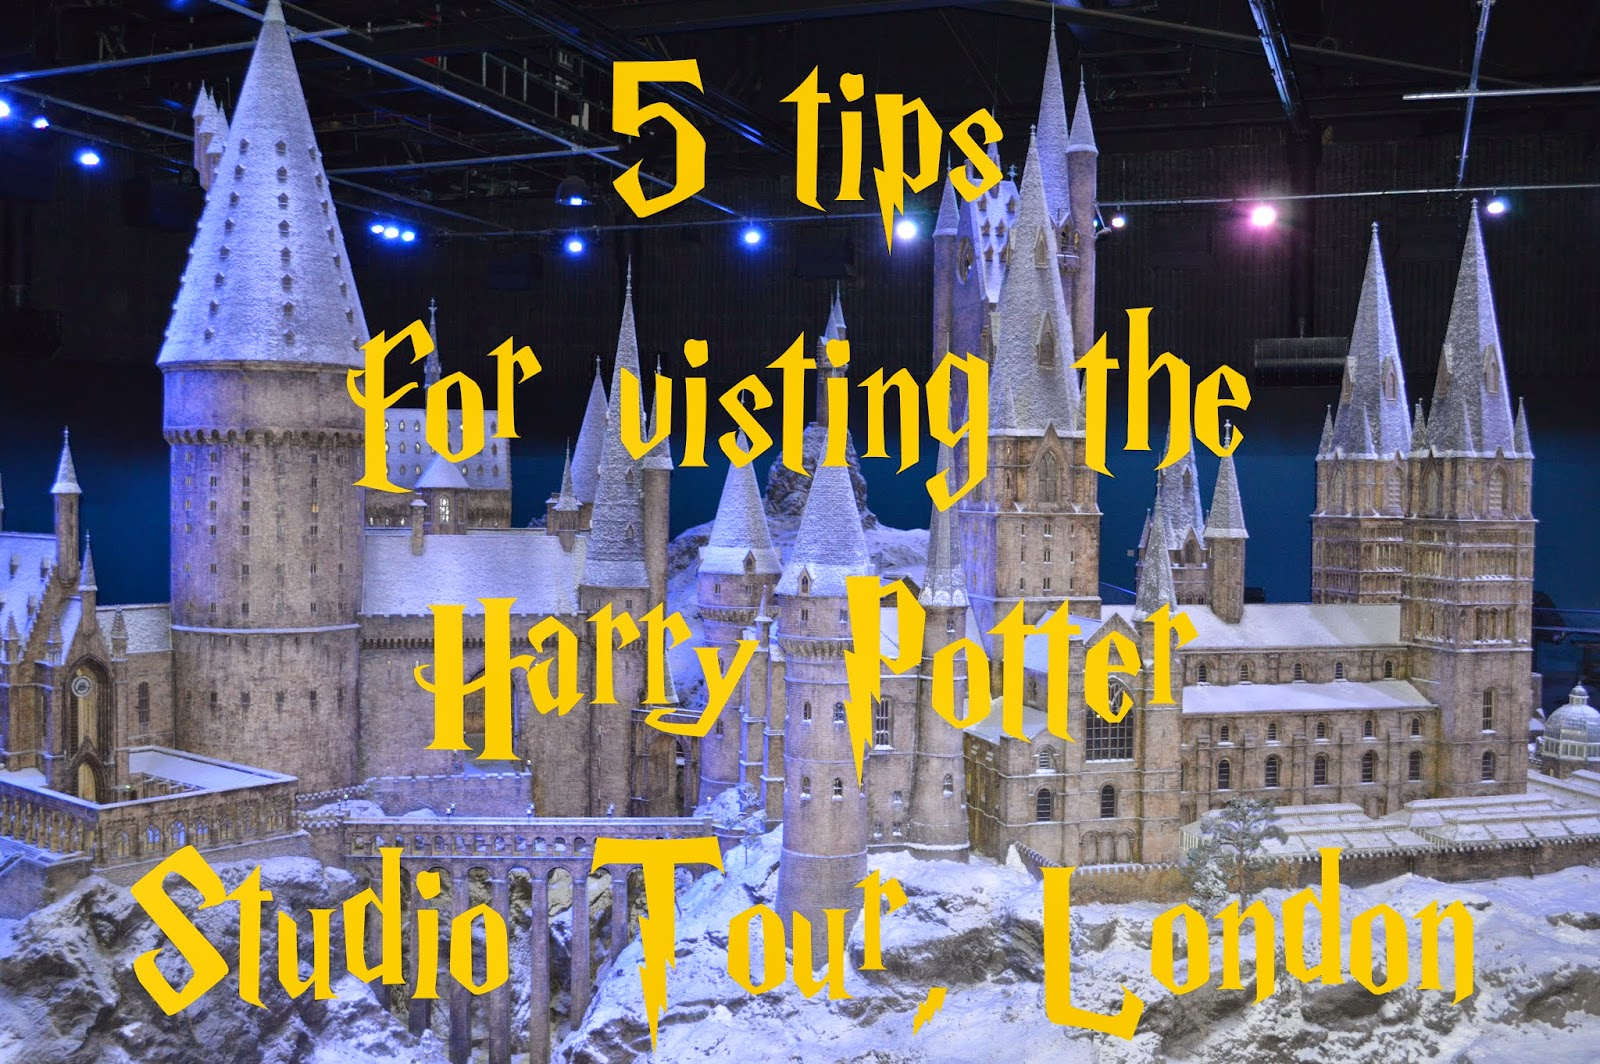 top tips, visit, advice, recommendations, d.i.y, costumes, planning, The Making of Harry Potter, World of Harry Potter, Hogwarts, Warner Bros, Studio Tour, day trip, dressing up, photos, photographs, ideas,